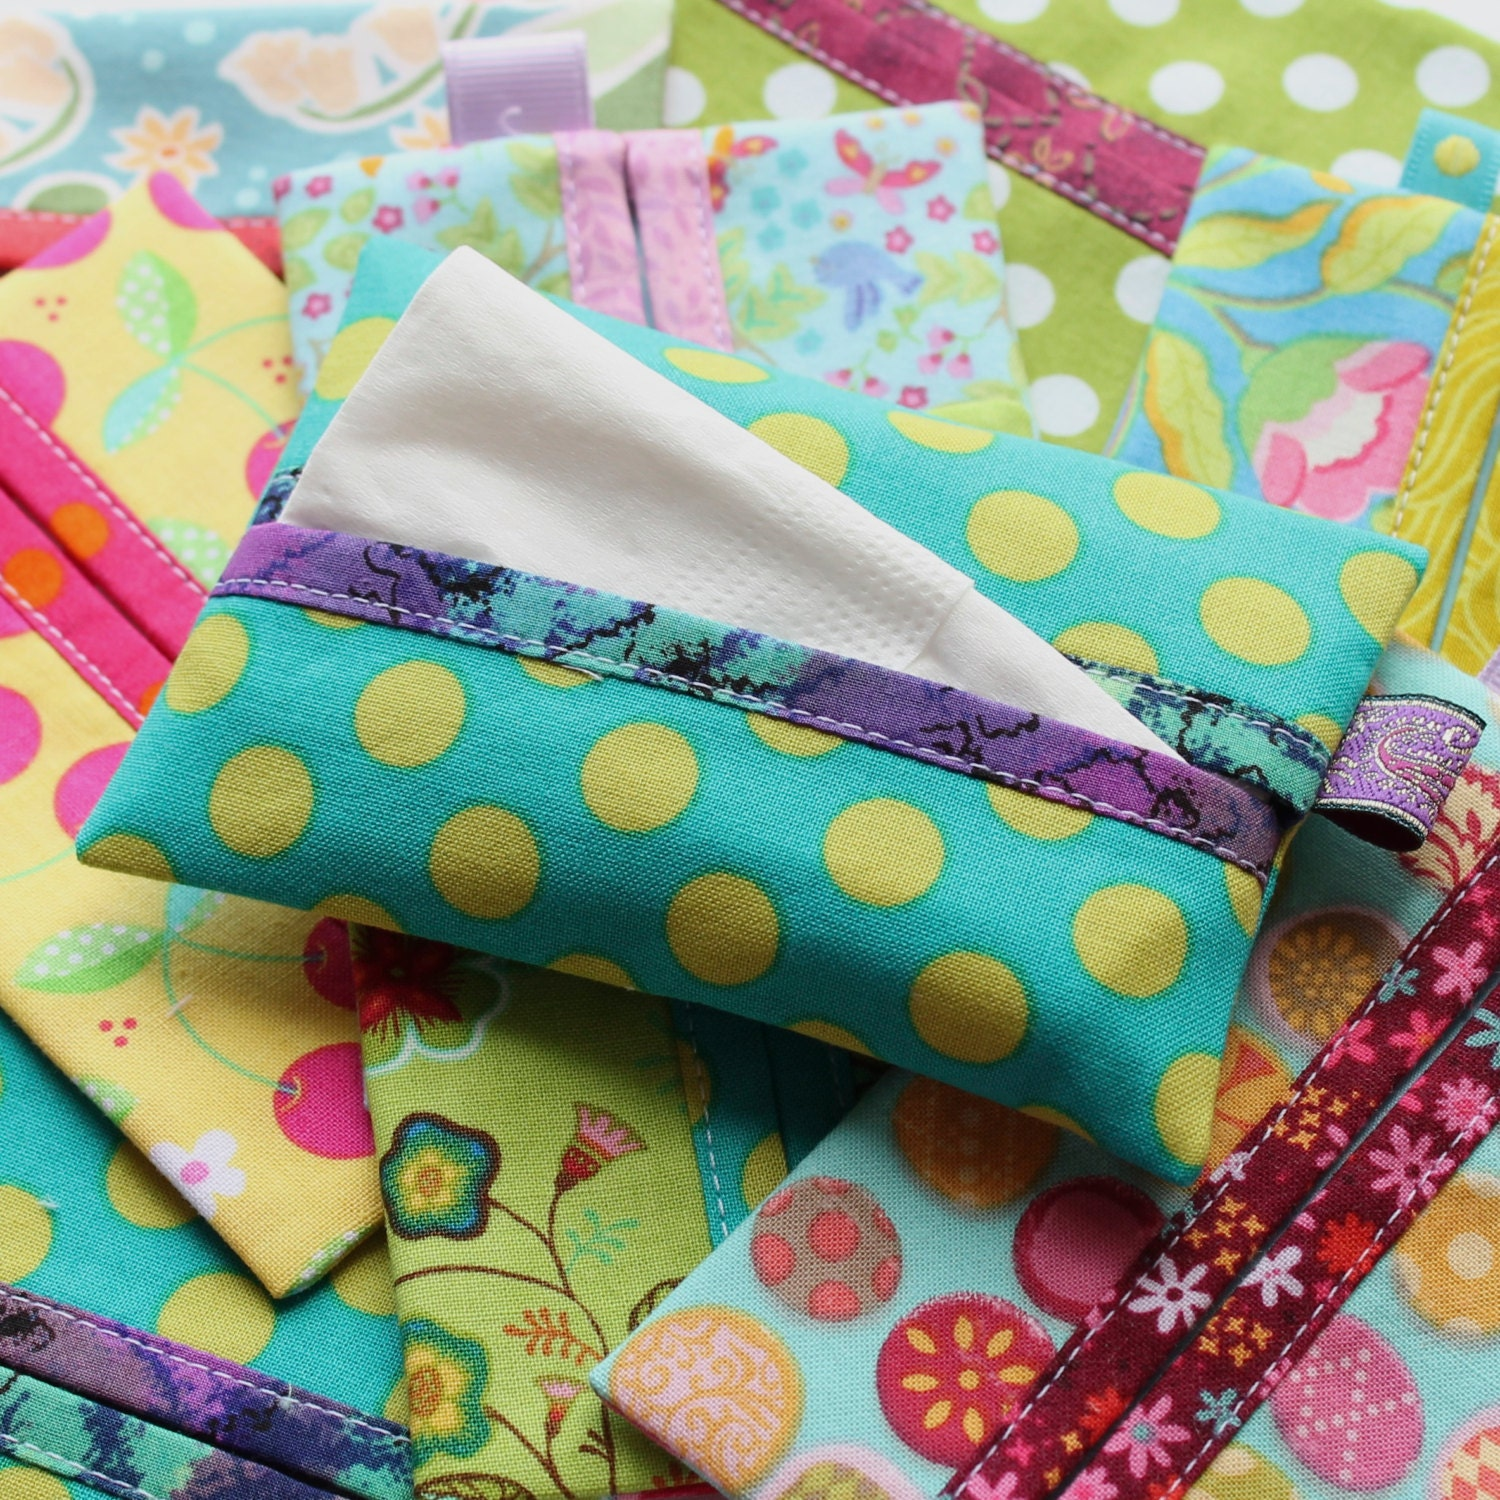 5 x Pocket tissue holders or travel Kleenex cases  Party Pack  various fabrics  ideal favor